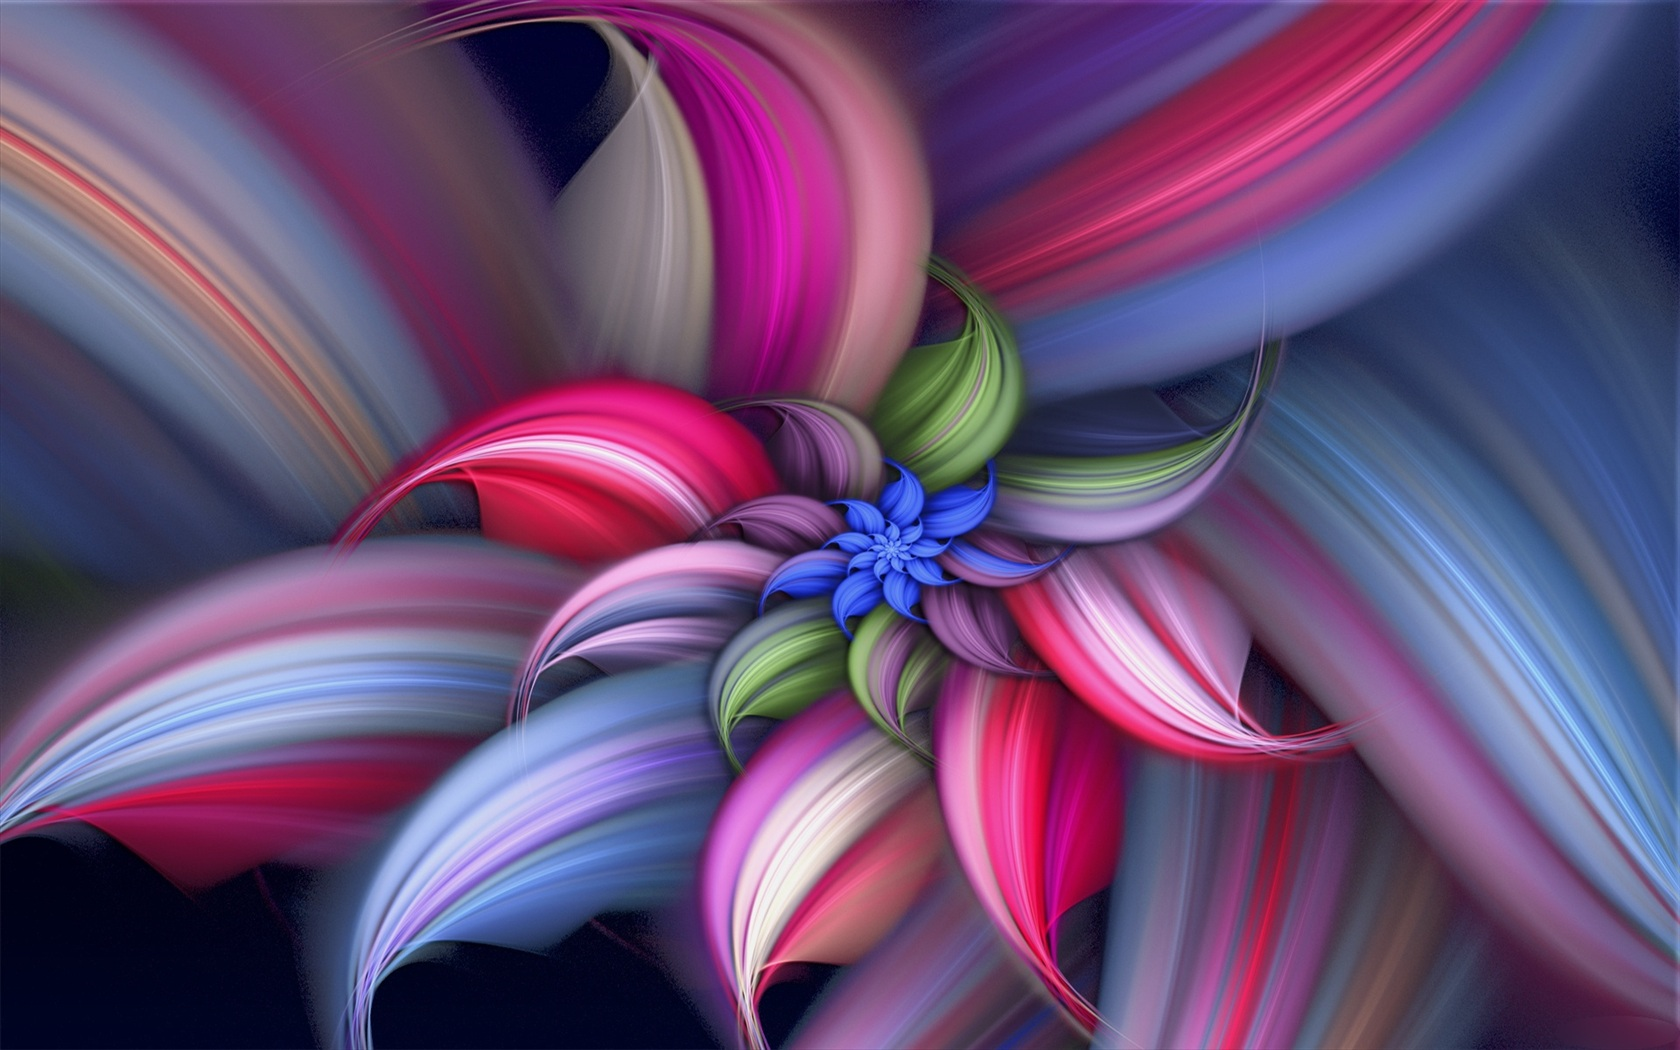 Wallpaper Colorful Abstract Beautiful Flower 1920x1200 Hd Picture Image